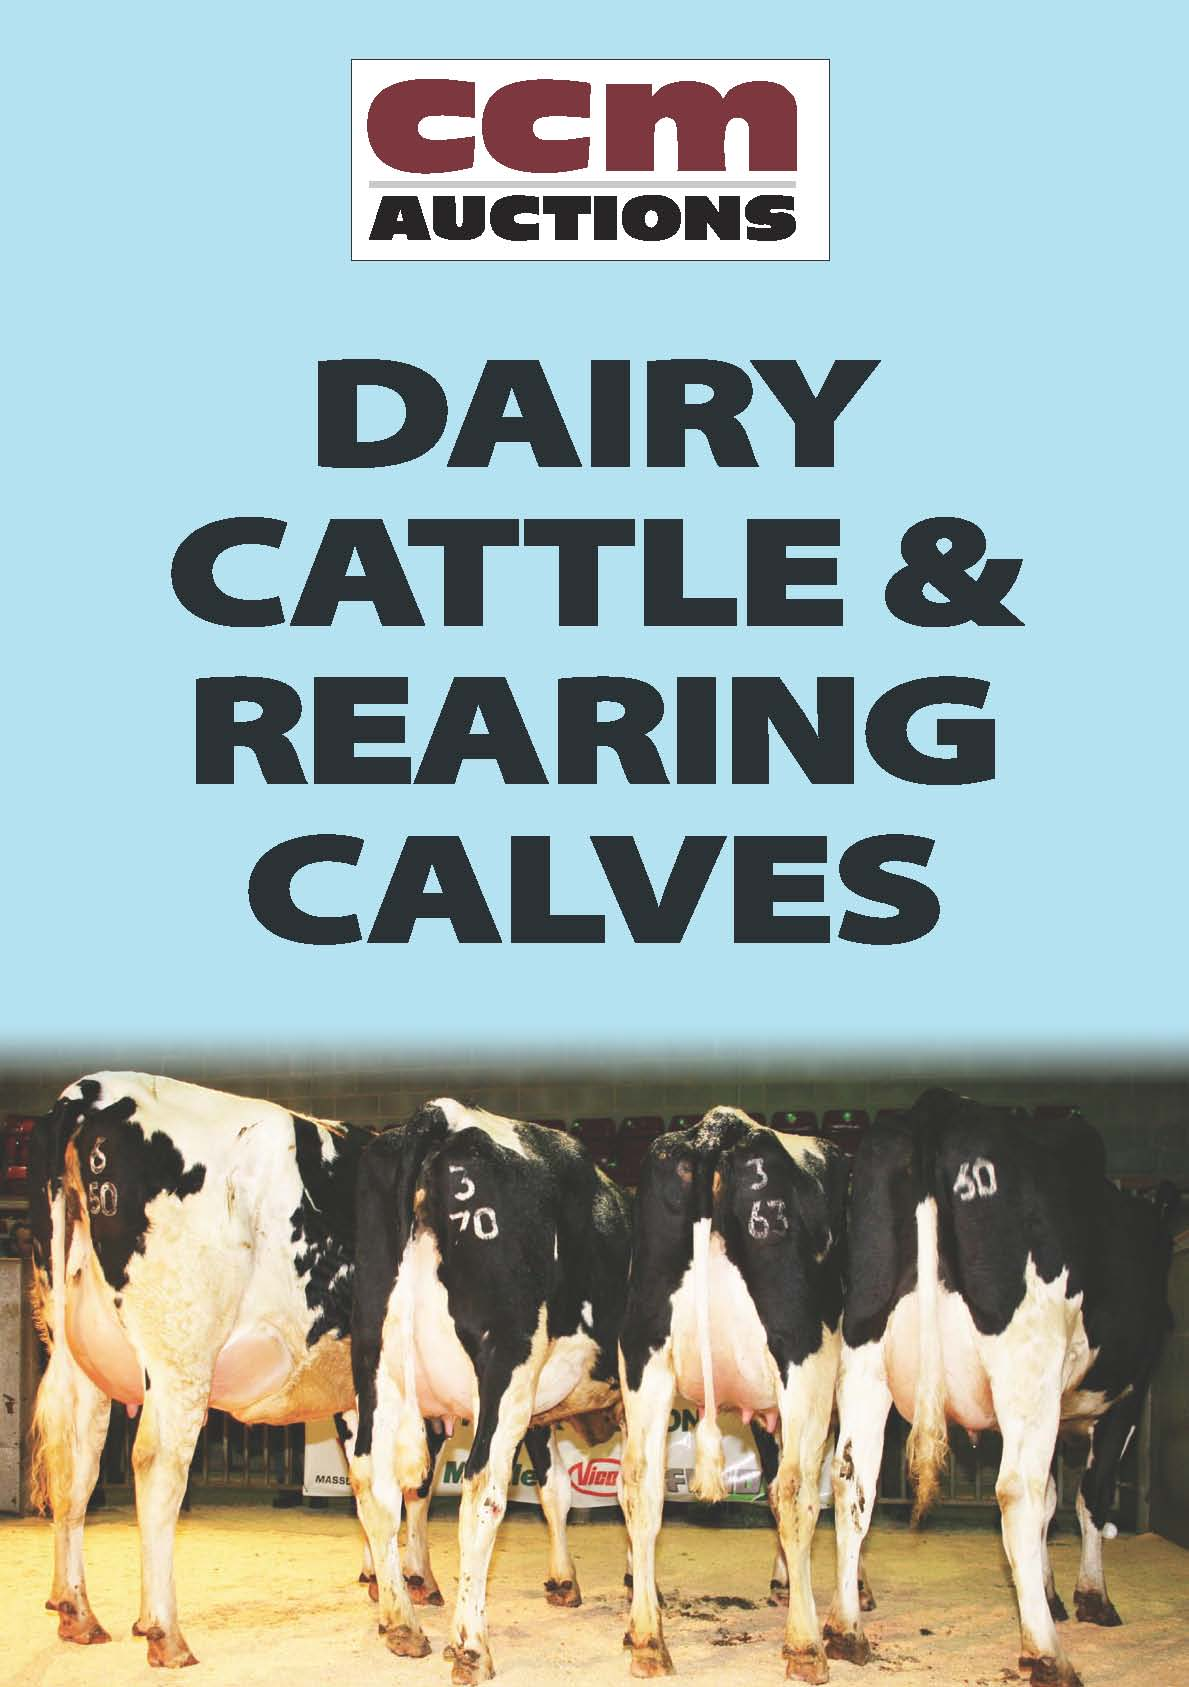 DAIRY CATTLE PRESS - MONDAY 14TH JANUARY 2019